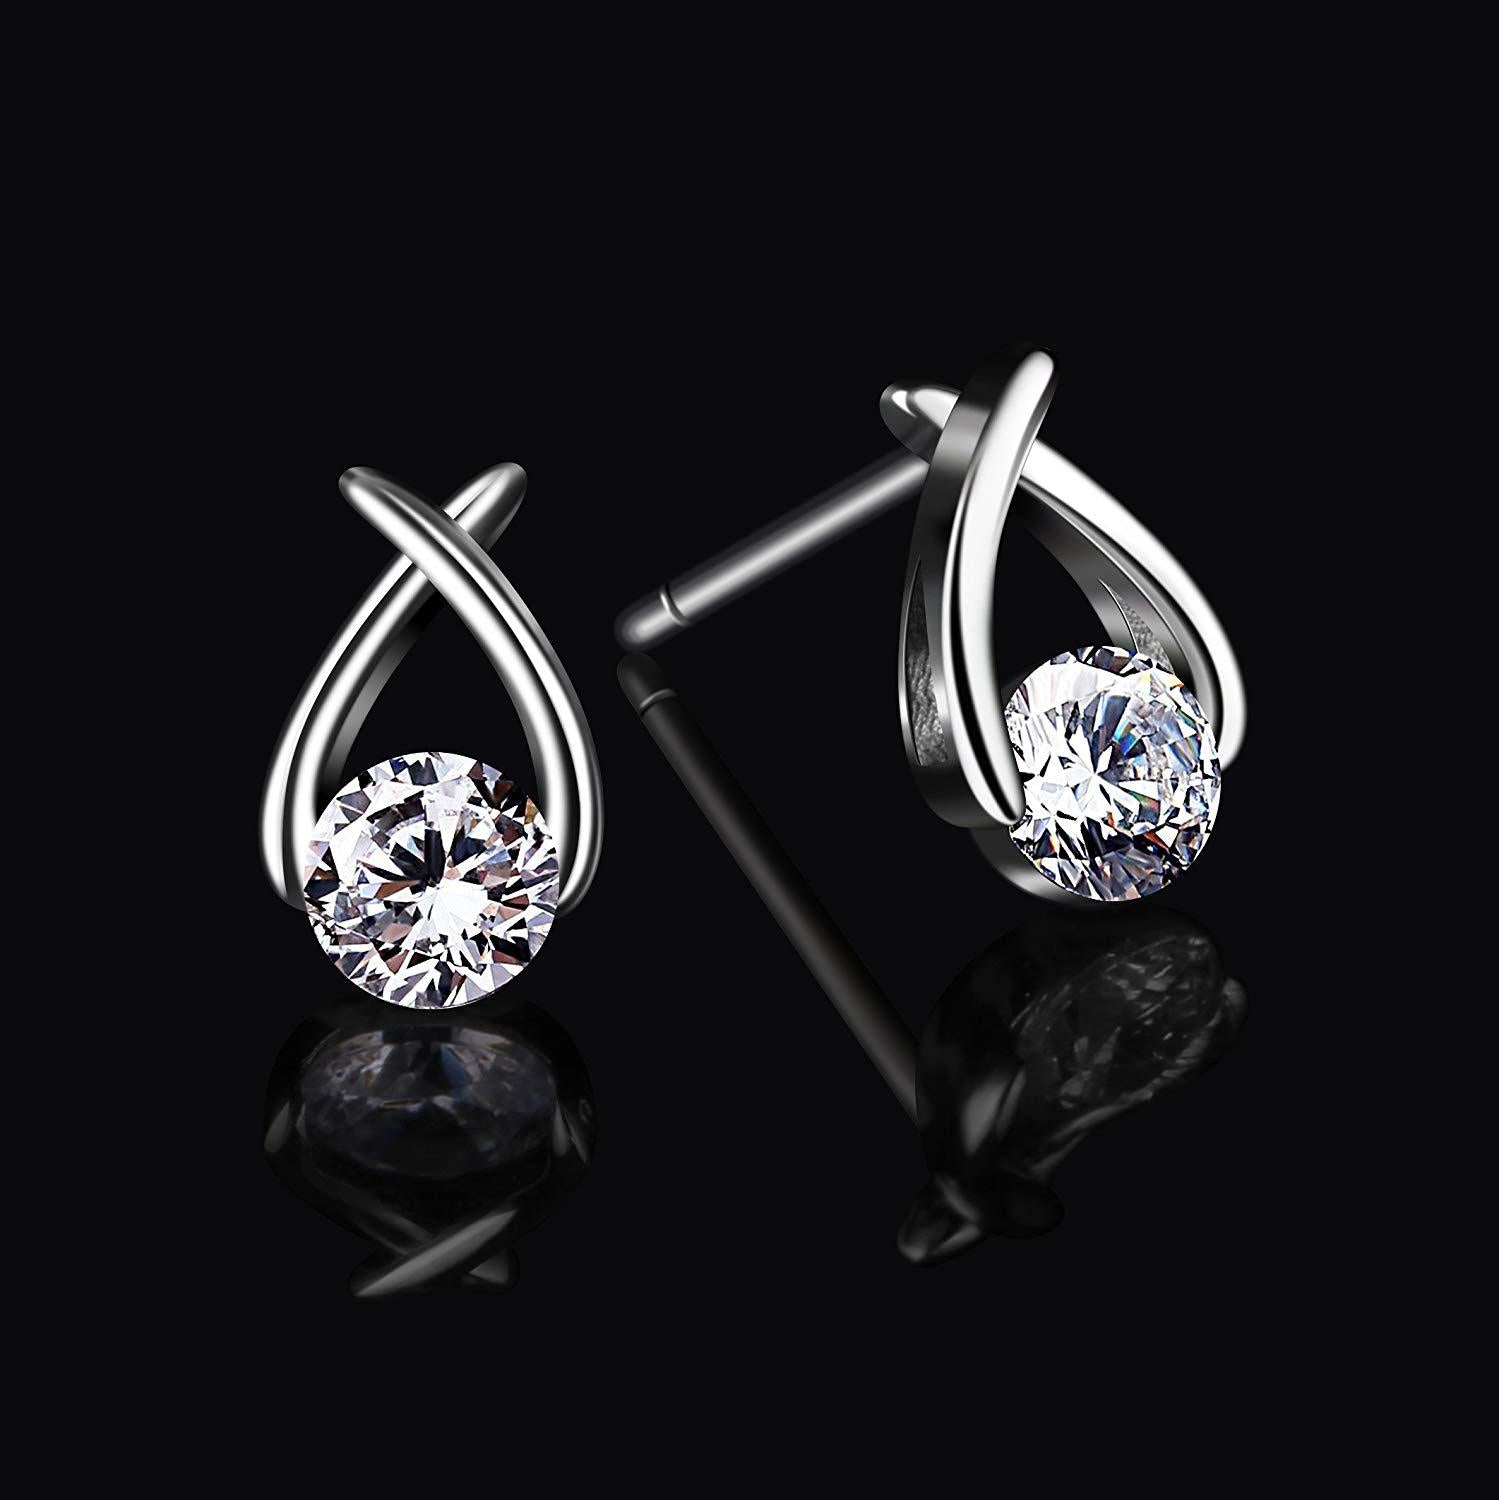 S925 Sterling Silver Creative Cross Budding Personality Wild Earrings Jewelry Cross-Border Exclusive